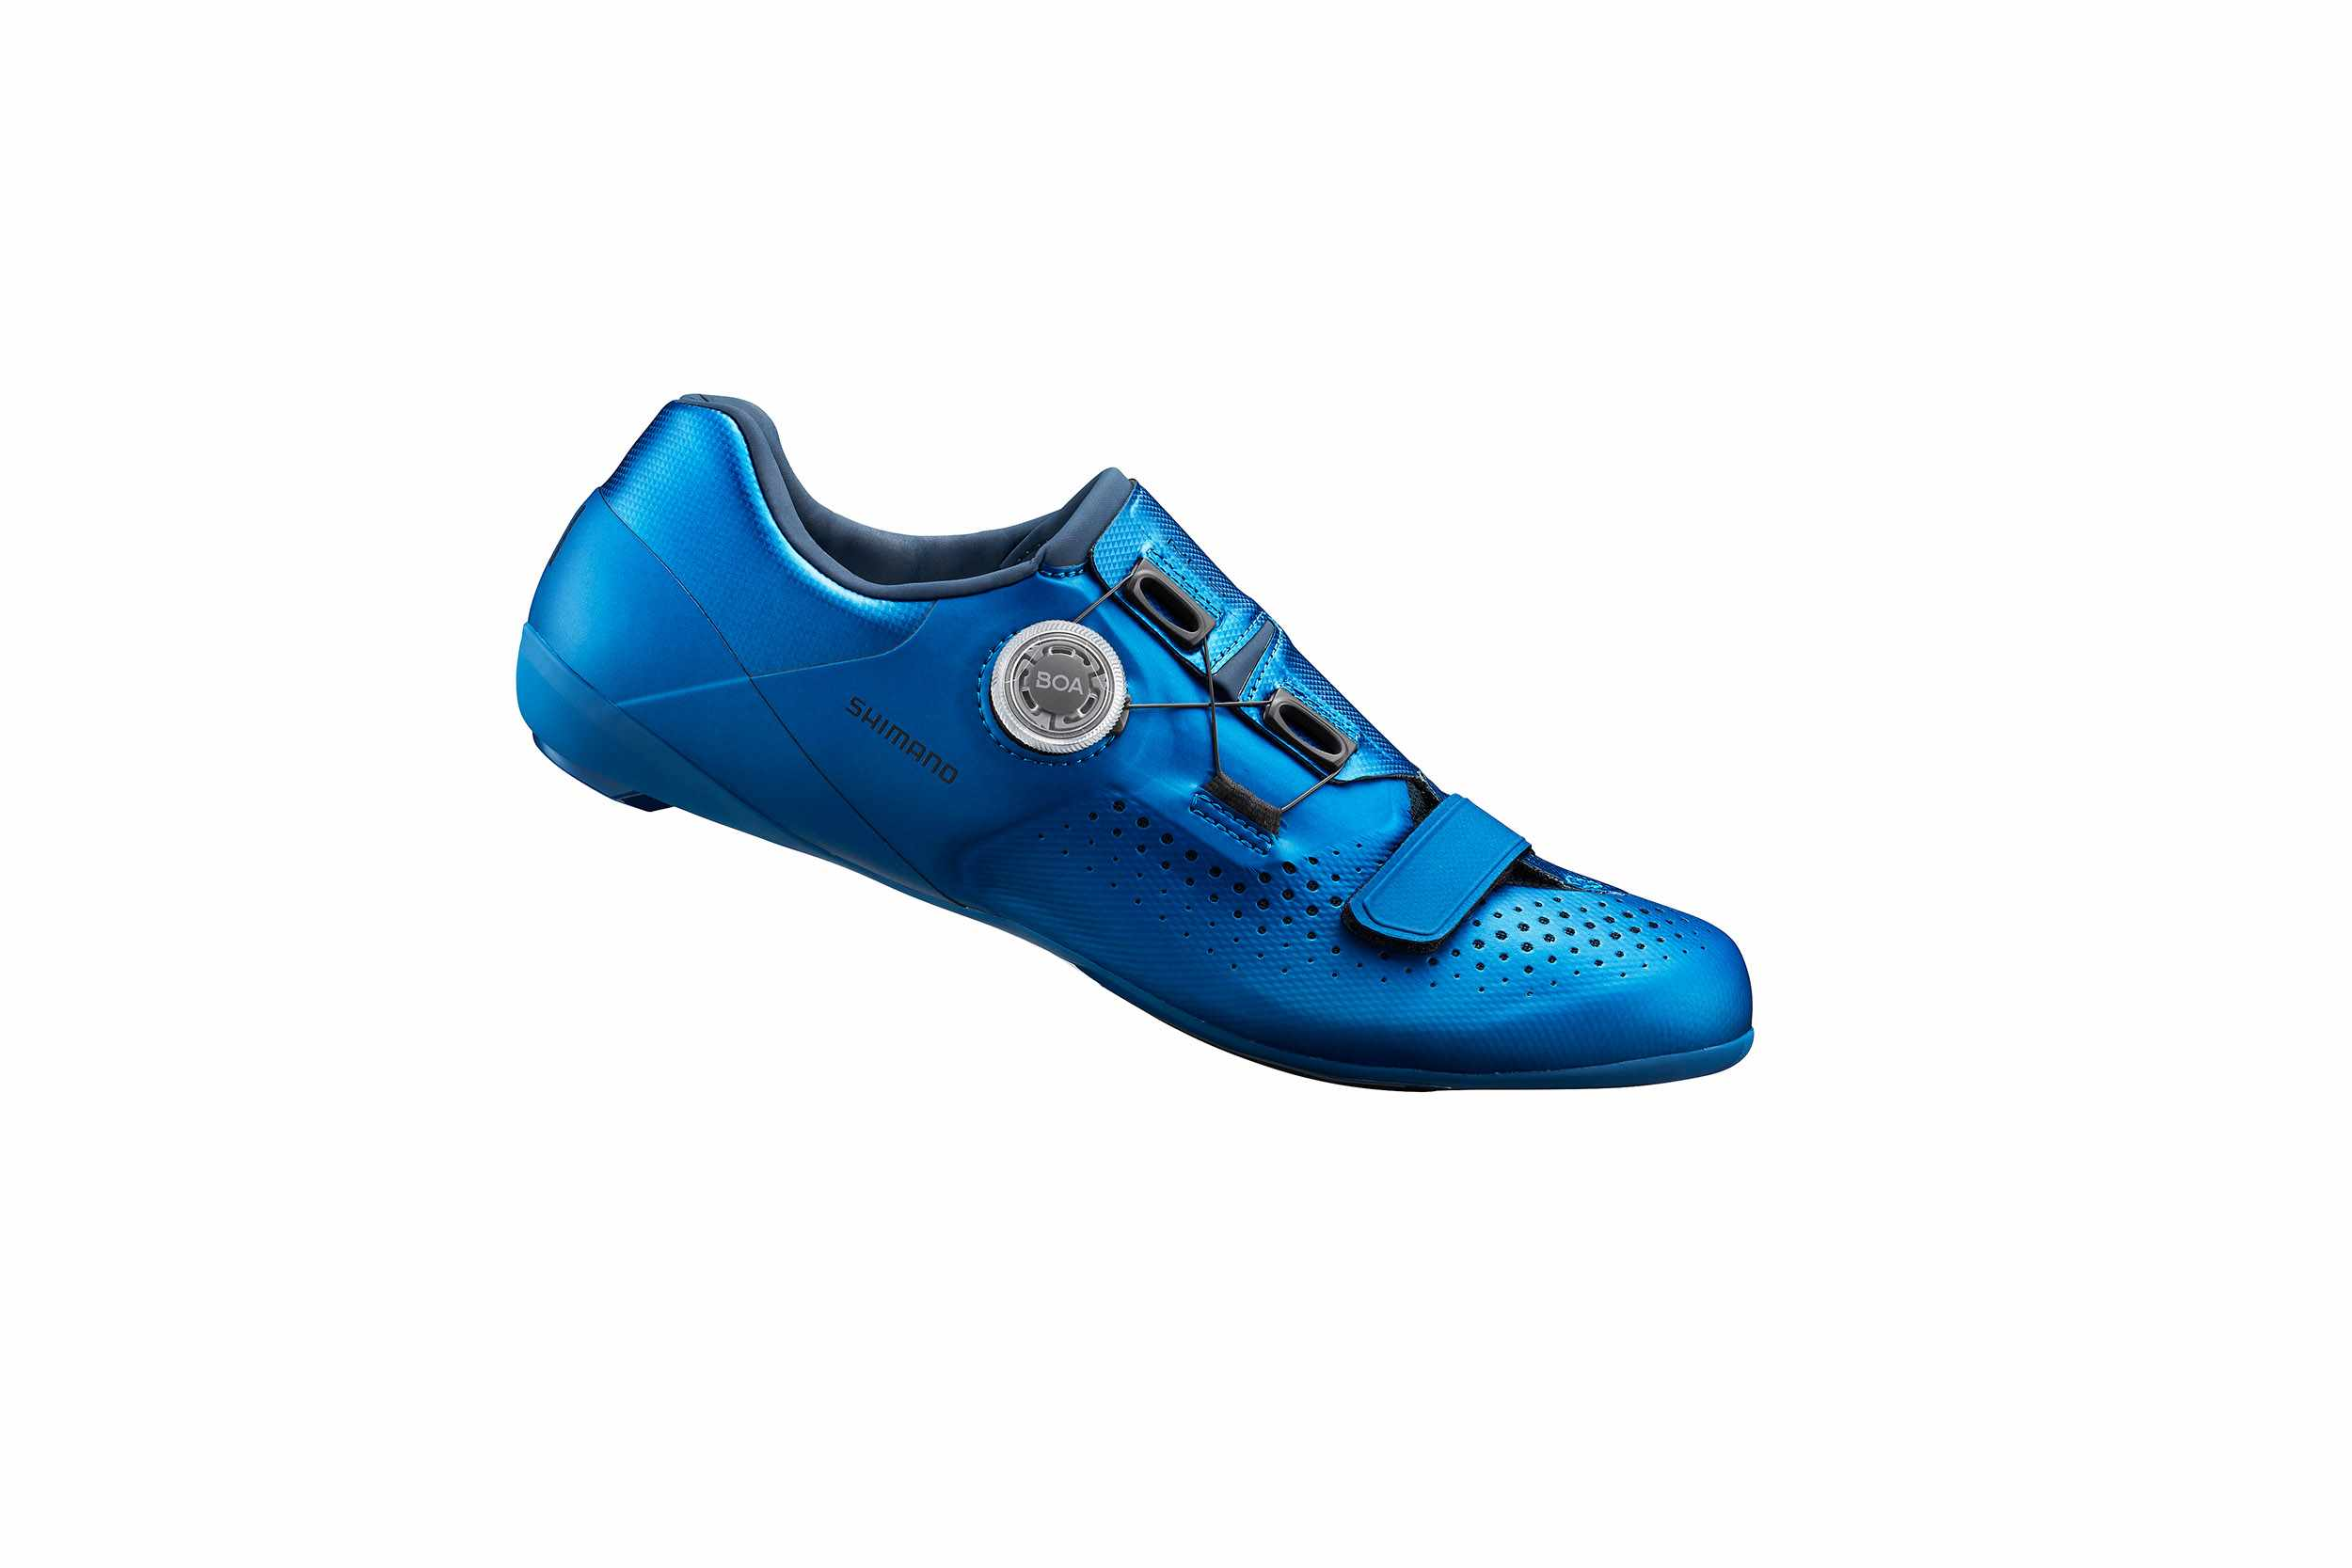 Shimano RC5 road shoe